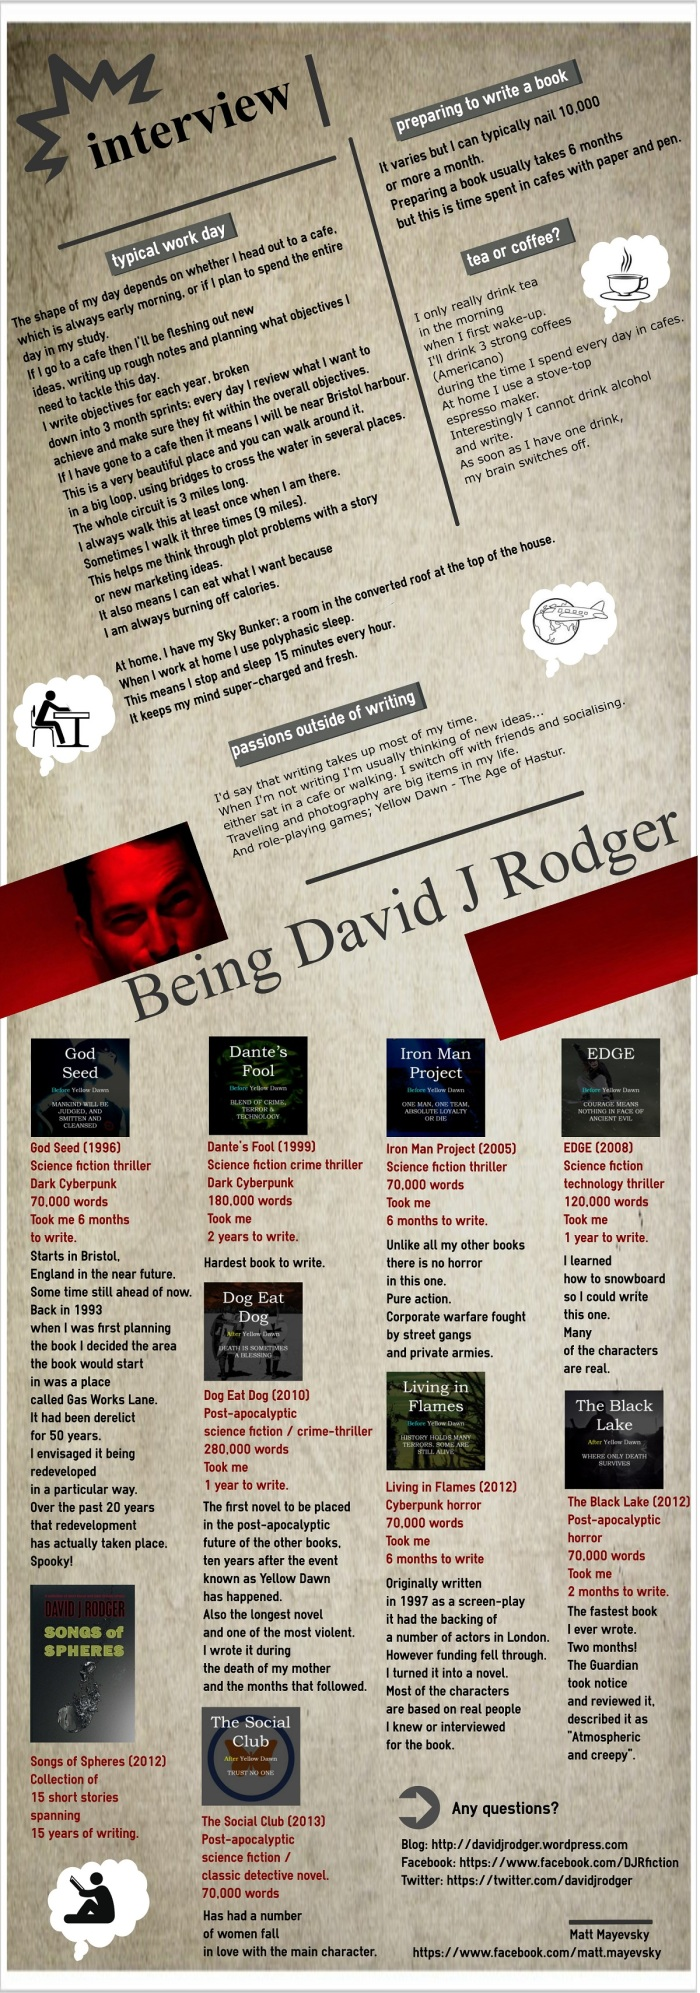 David J Rodger Infographic Interview by Matt Mayevsky -Analyst, Economist, and  Author